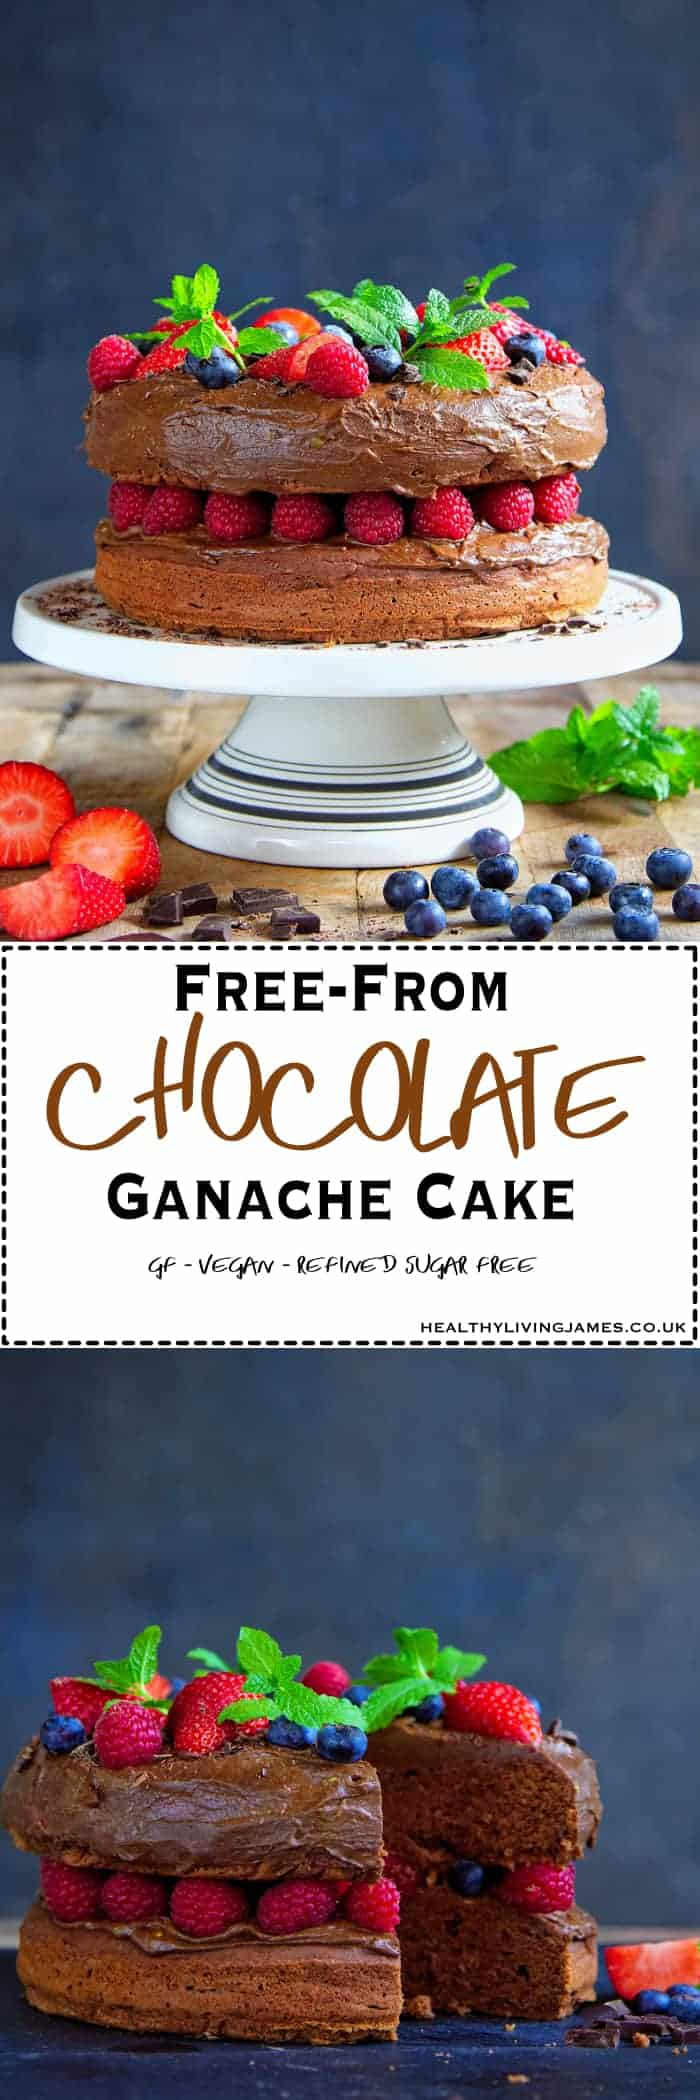 Free From Chocolate Ganache Cake